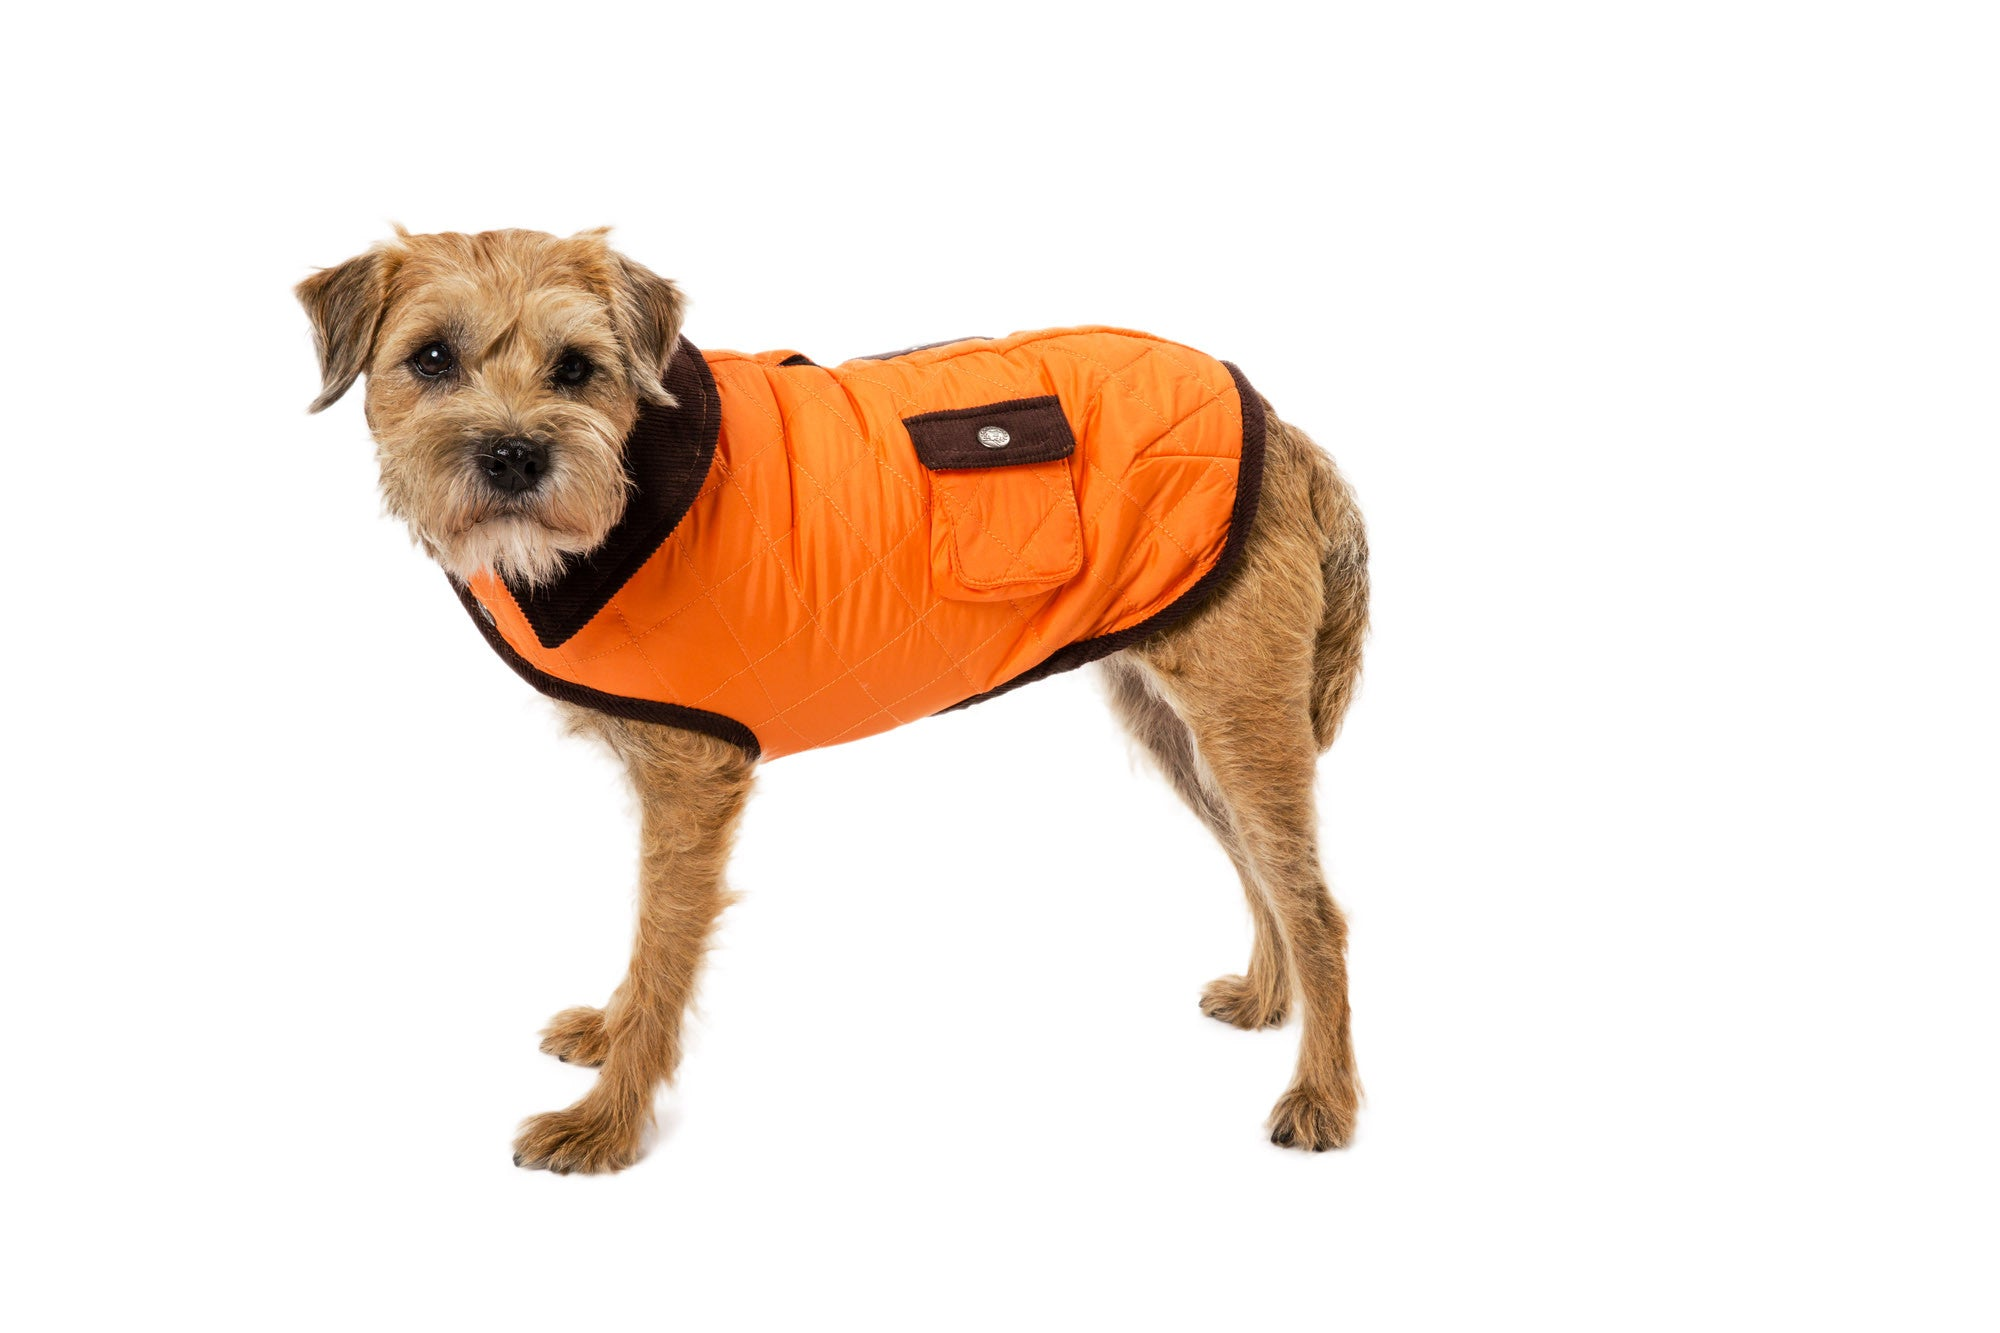 Dog Coat - Barn Coat, Dog Coats | 5 Colors